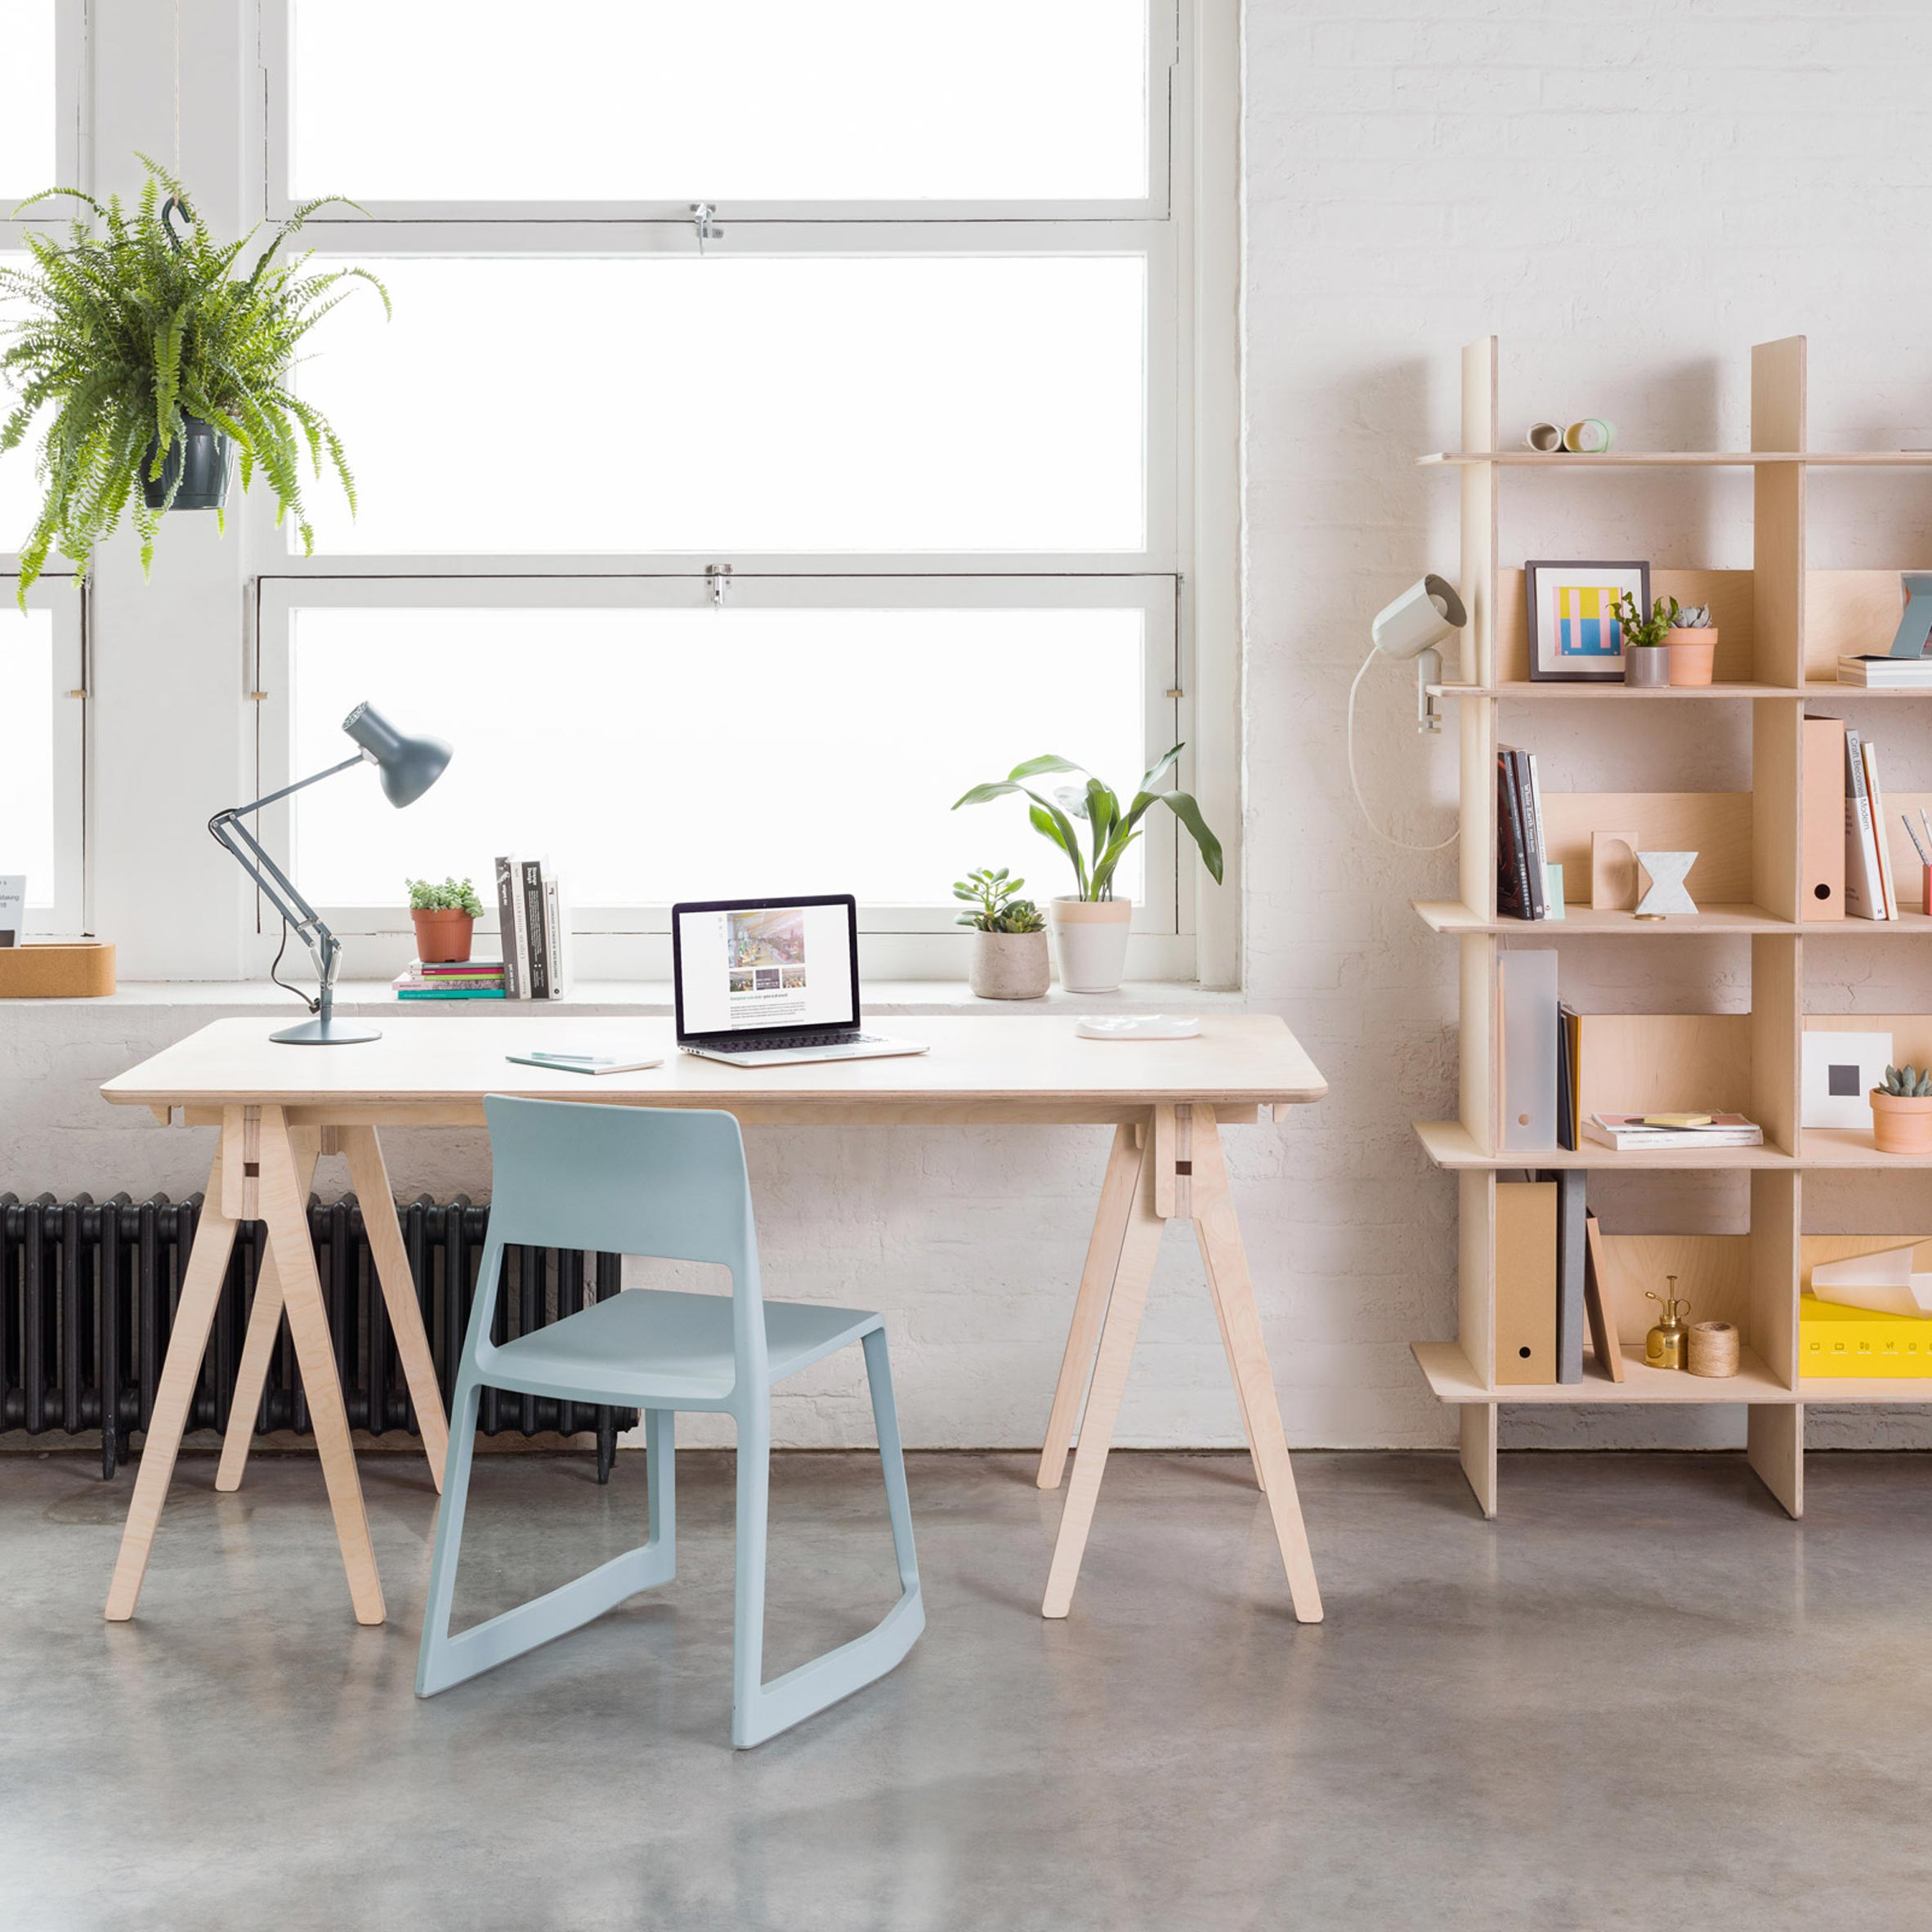 Opendesk Launches Shelf And Desk That Can Both Be Assembled Tool Free